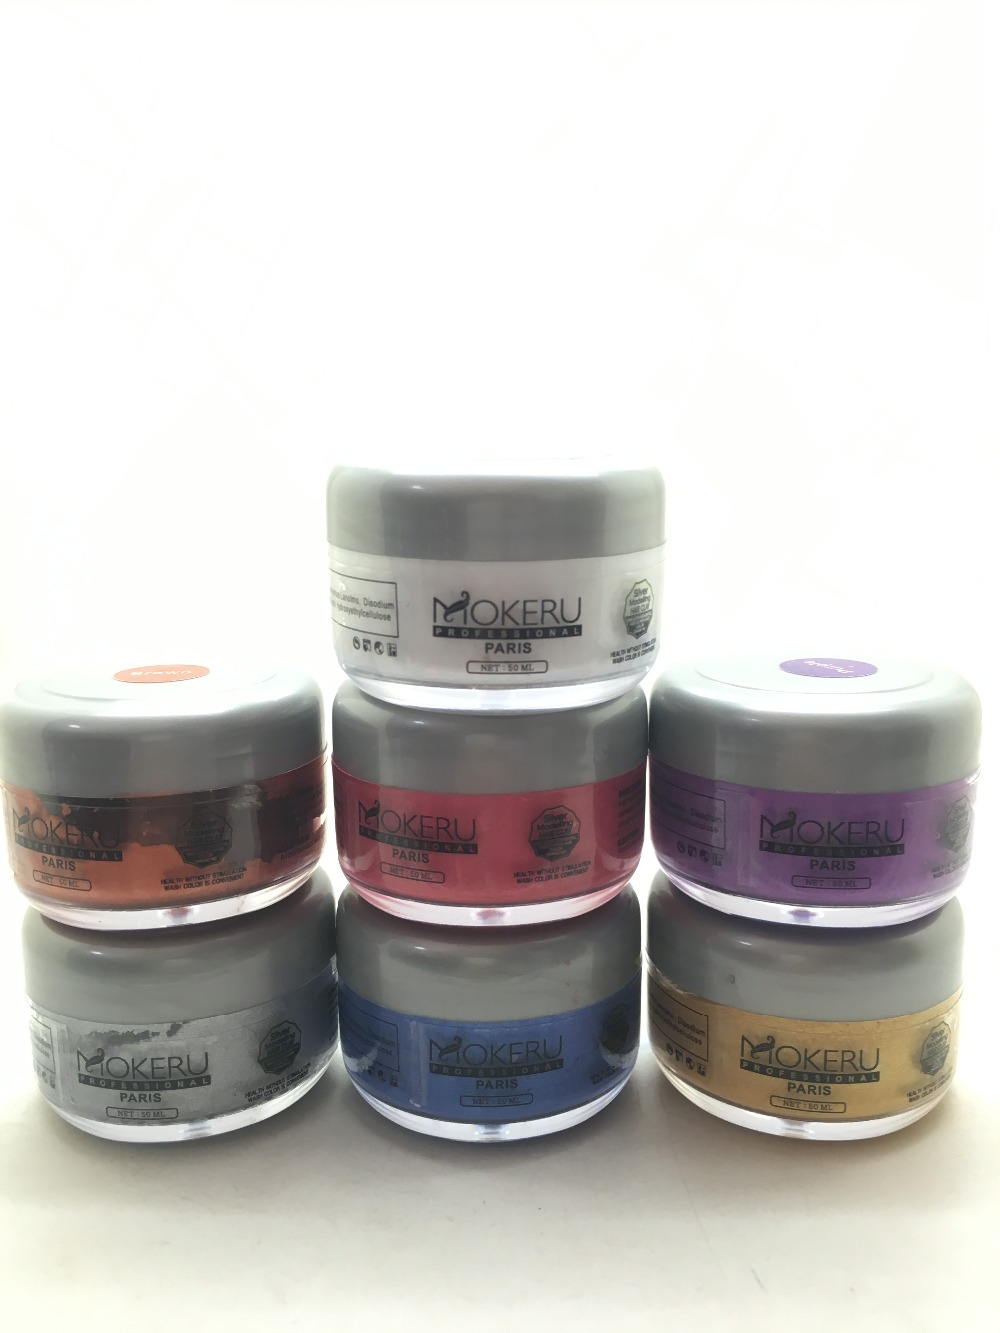 Natural hair styling wax